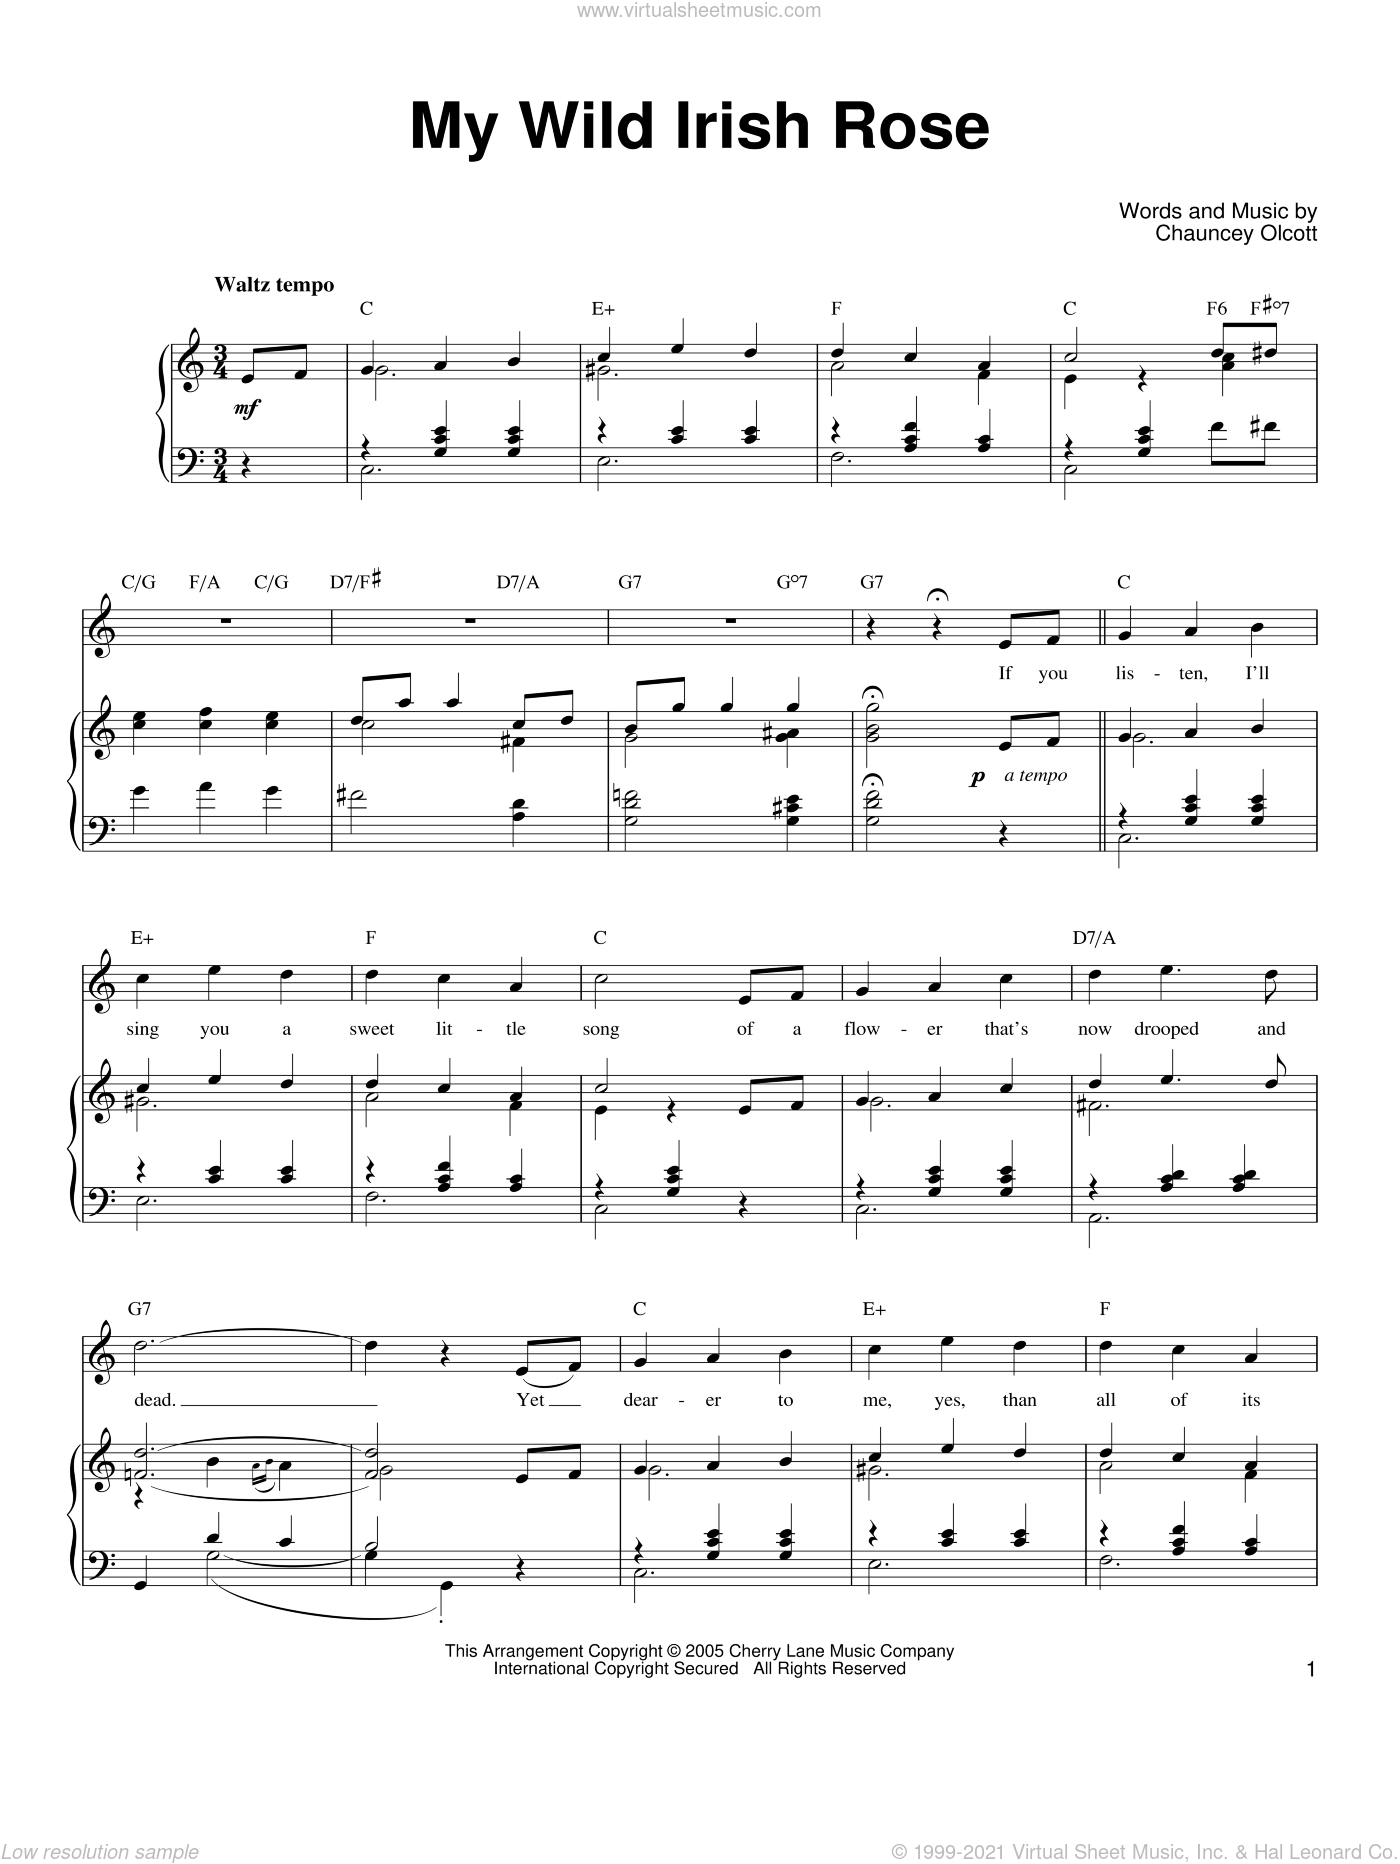 My Wild Irish Rose sheet music for voice, piano or guitar by Ronan Tynan